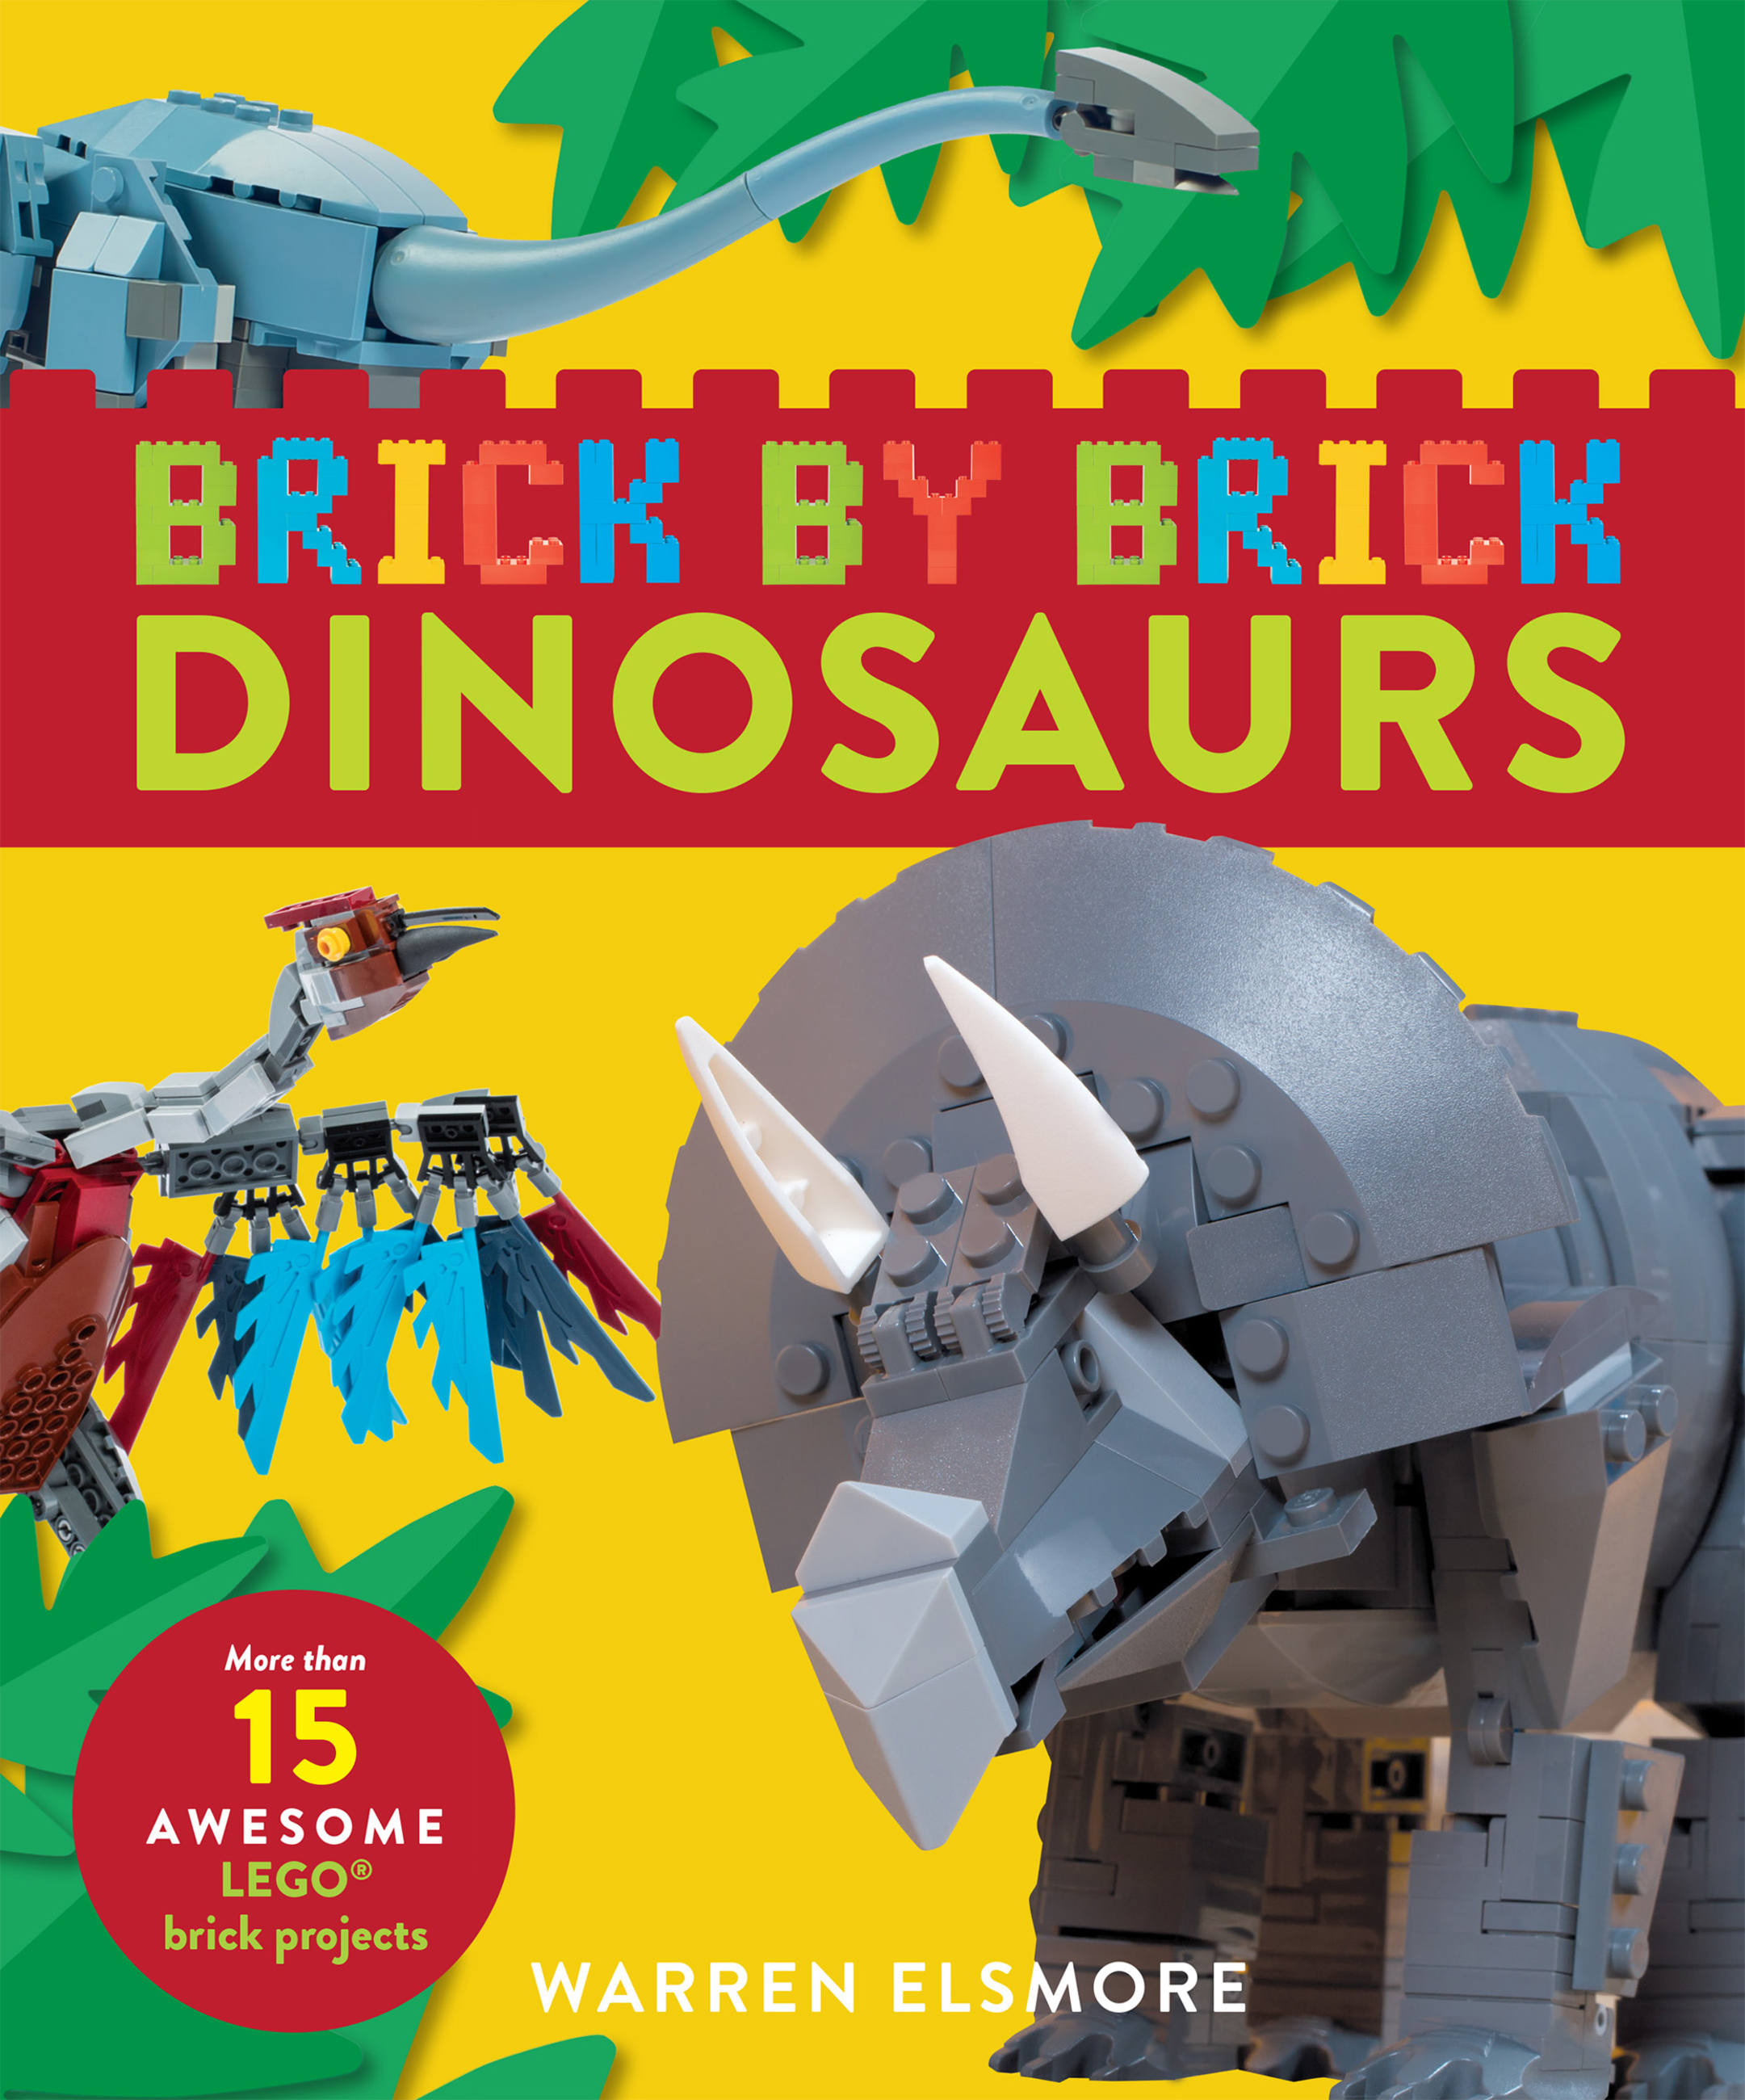 Brick by Brick Dinosaurs More Than 15 Awesome LEGO Brick Projects